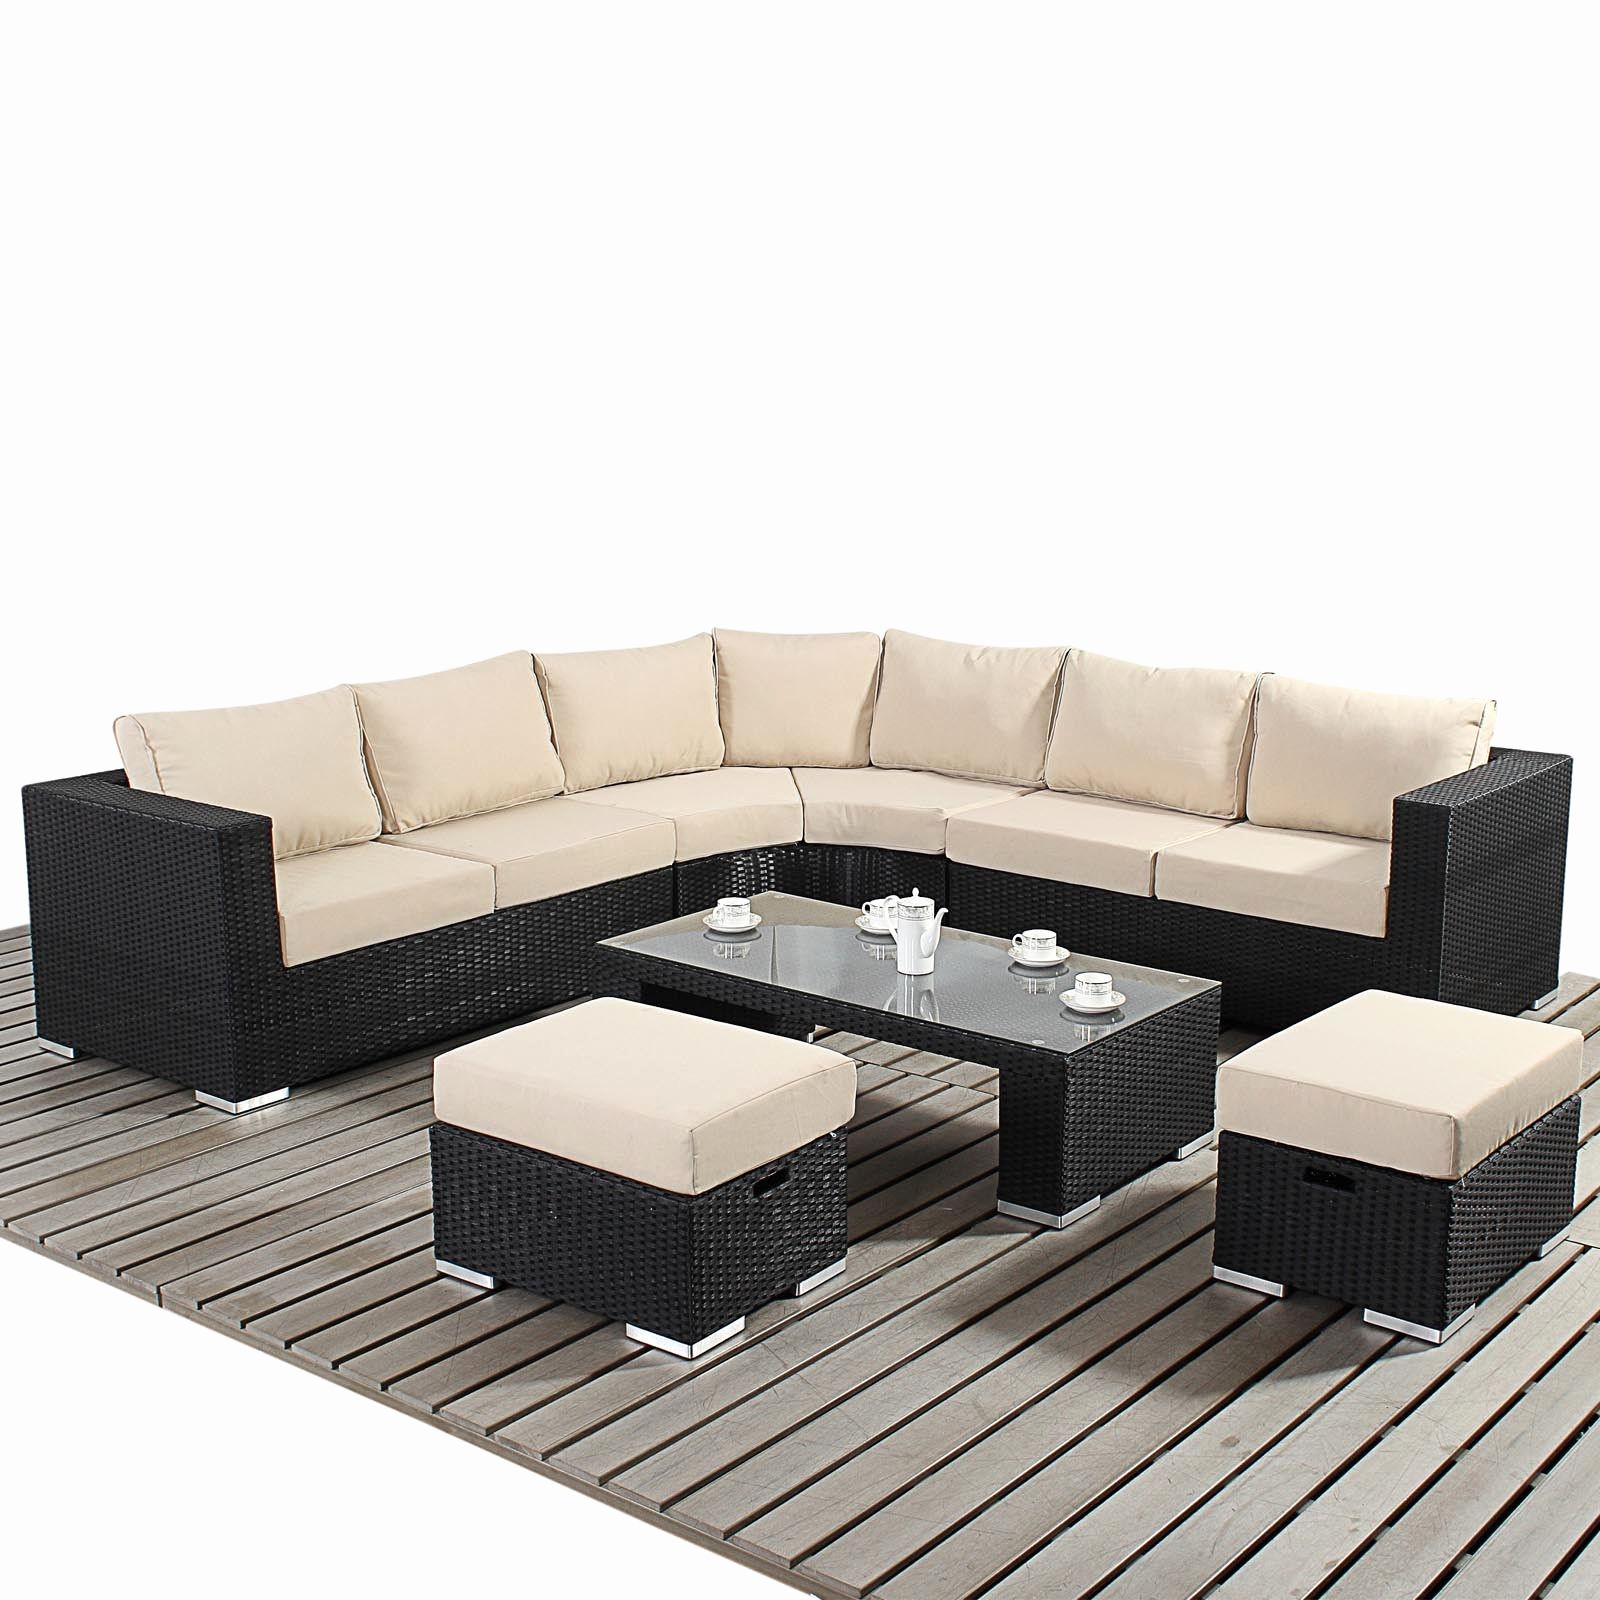 Luxury Rounded Corner Sofa Art New For 2015 Garden Village